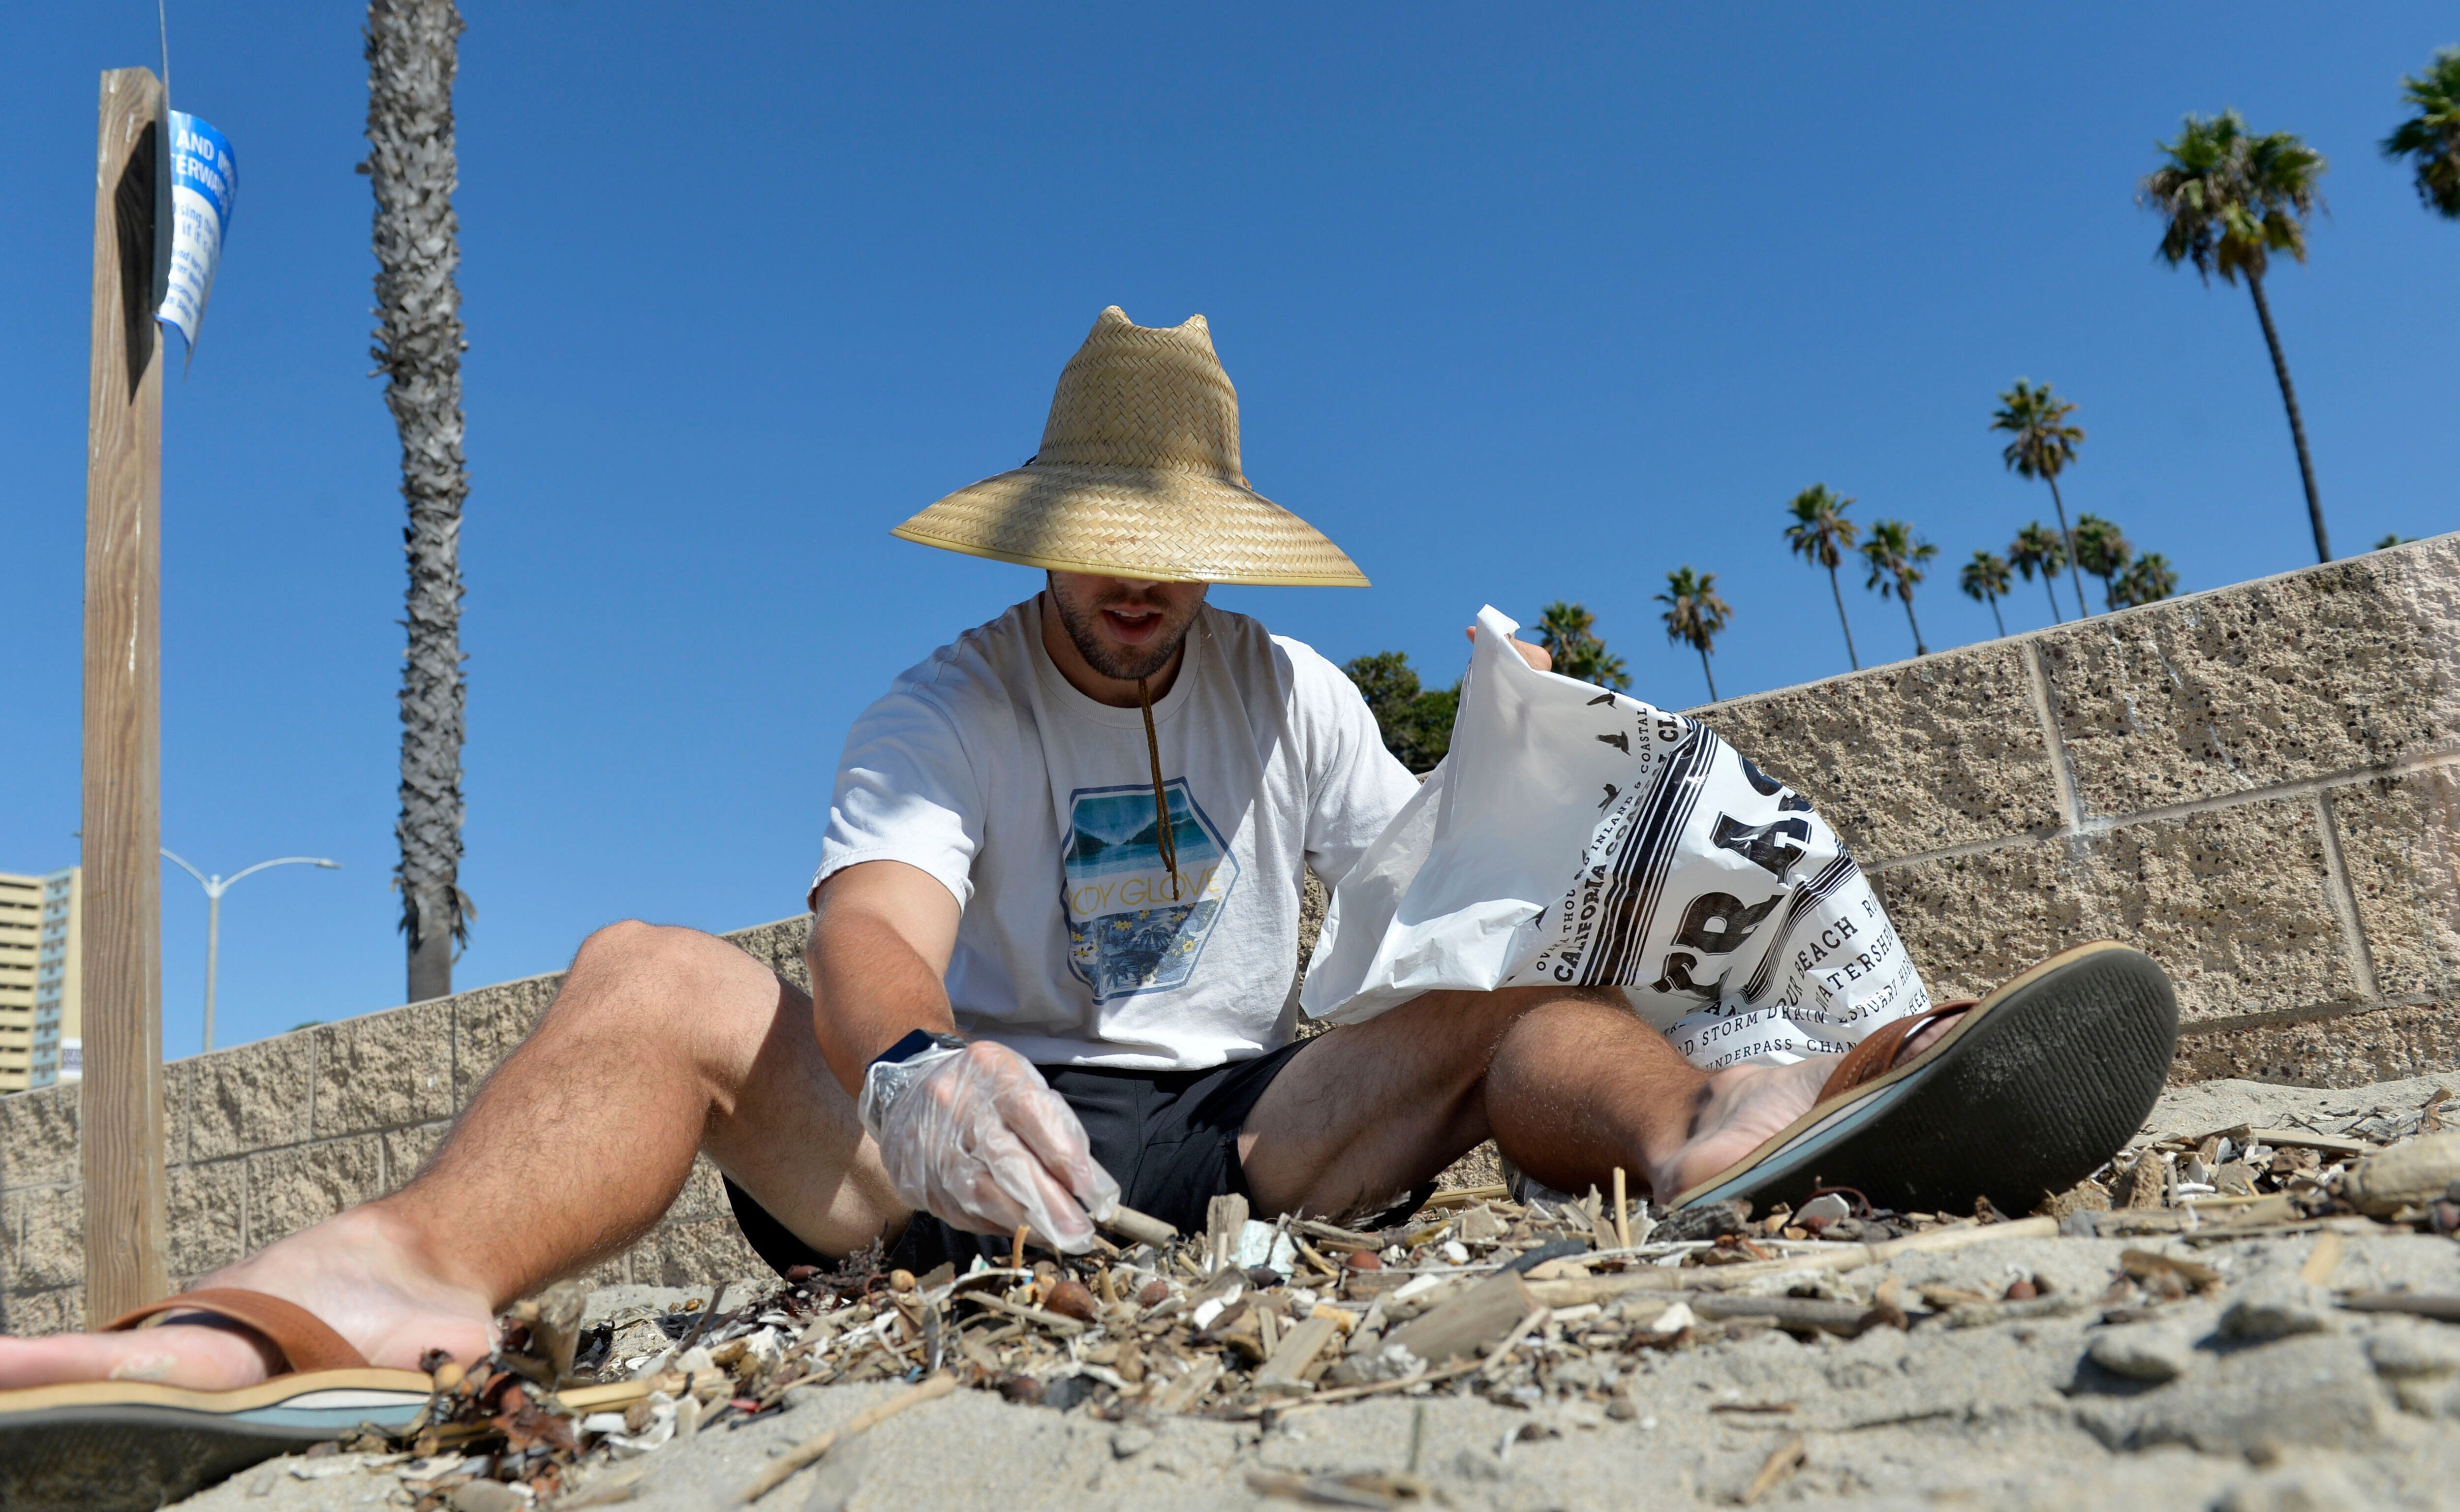 A volunteer sifts through debris, picking out cigarette butts on Coastal Cleanup Day on September 15th, 2018 in Long Beach, C